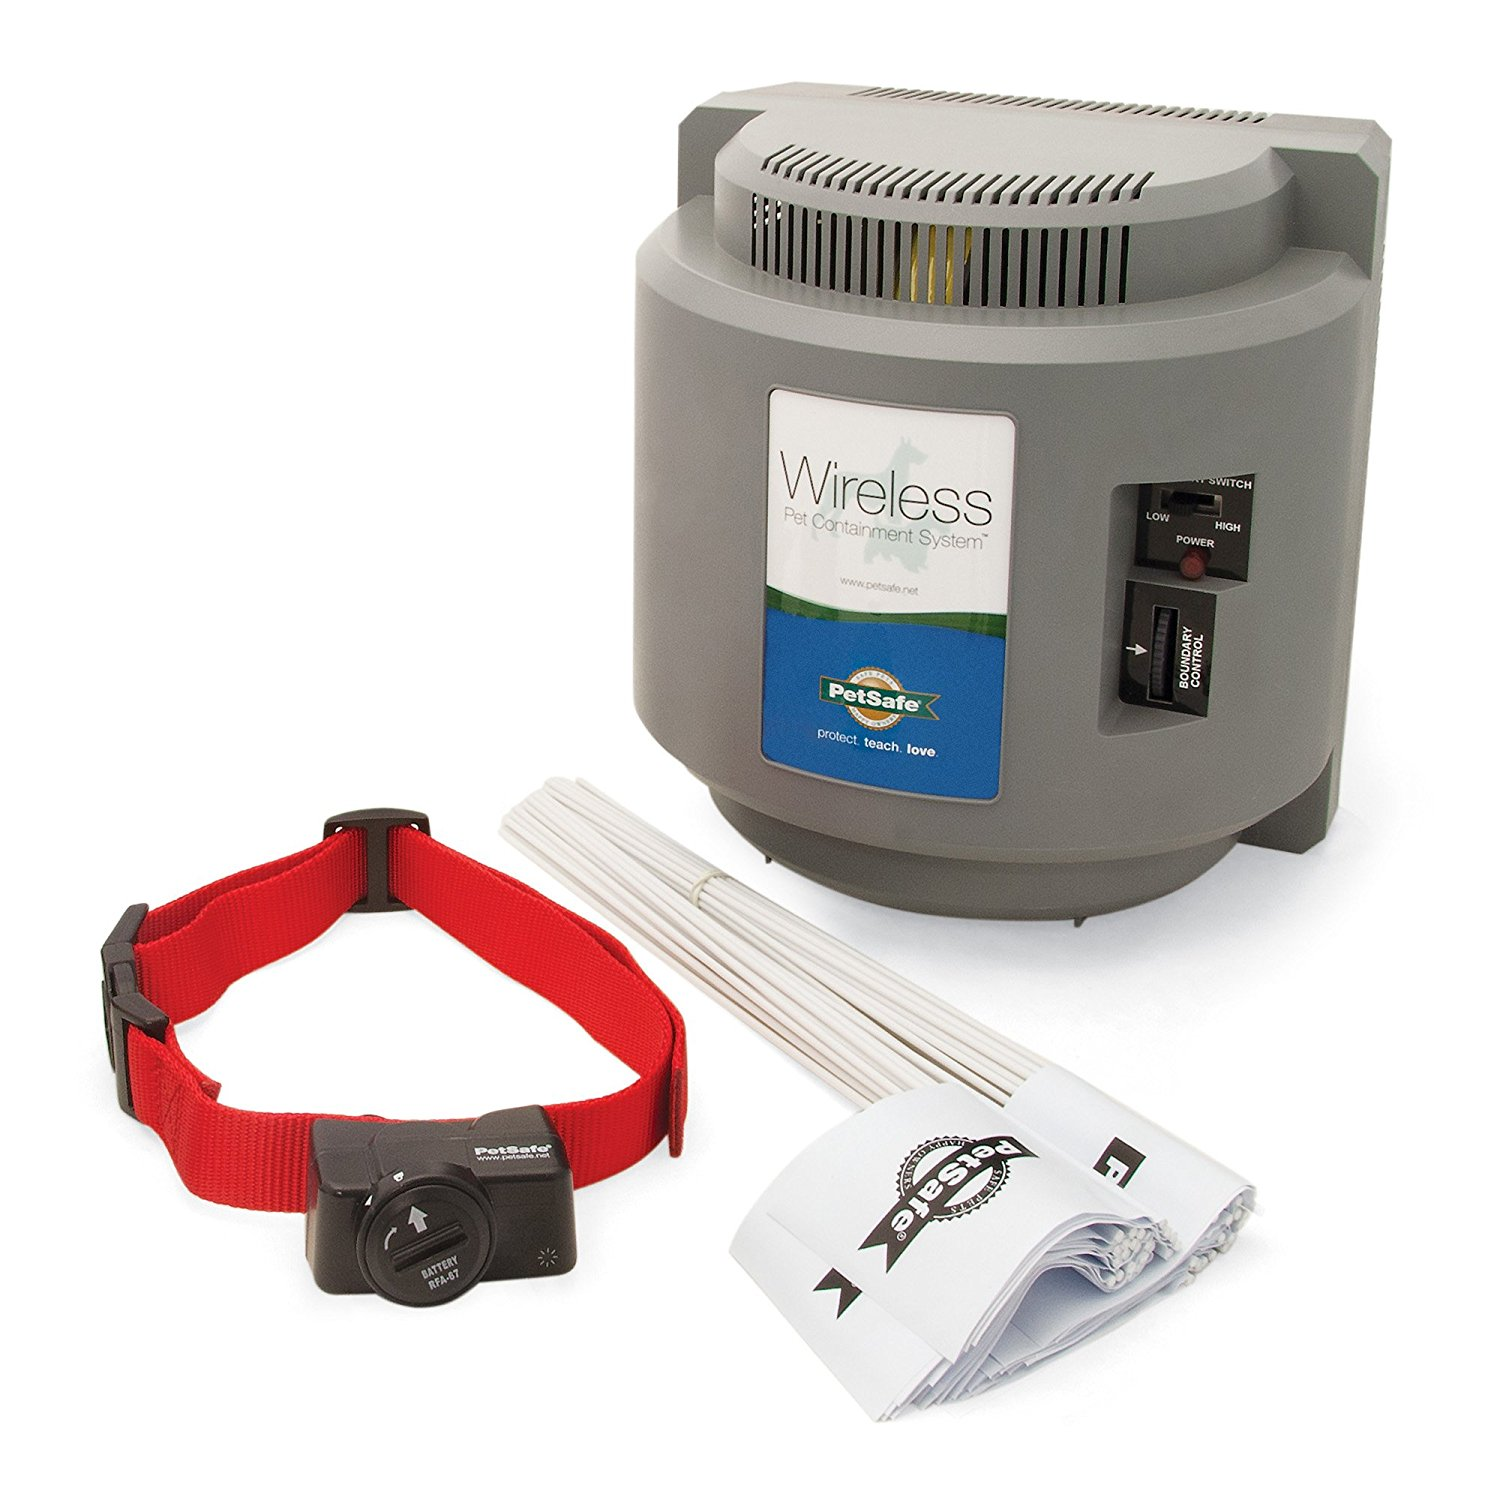 ​PetSafe Wireless Pet Containment System